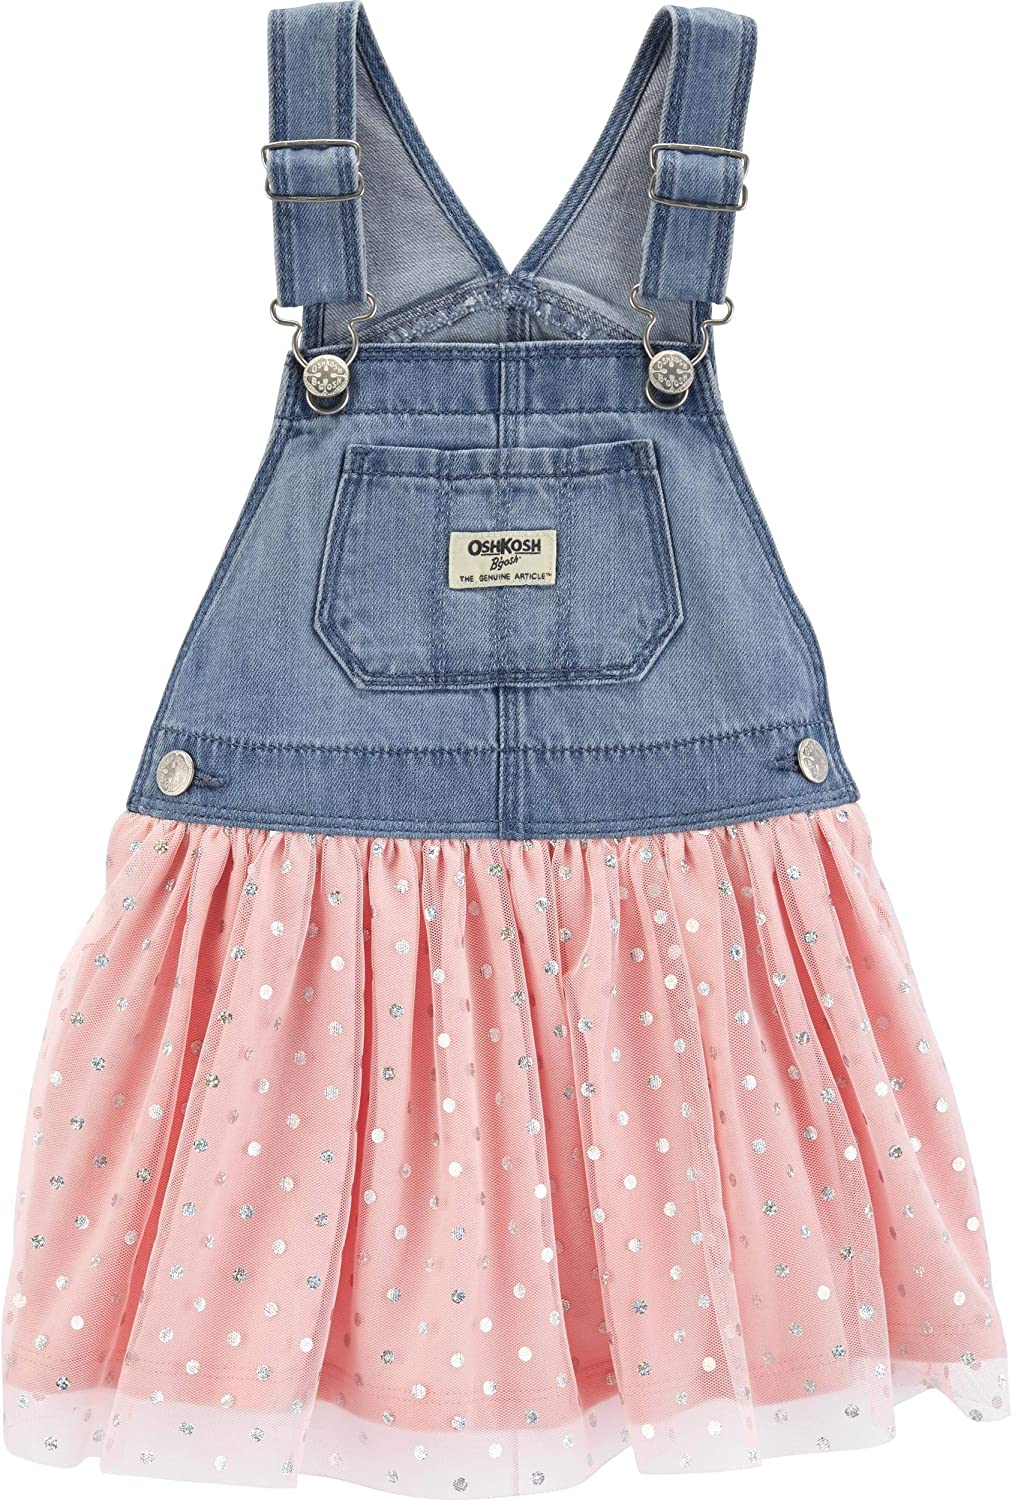 OshKosh B'Gosh Baby Girls' World's Best Overalls